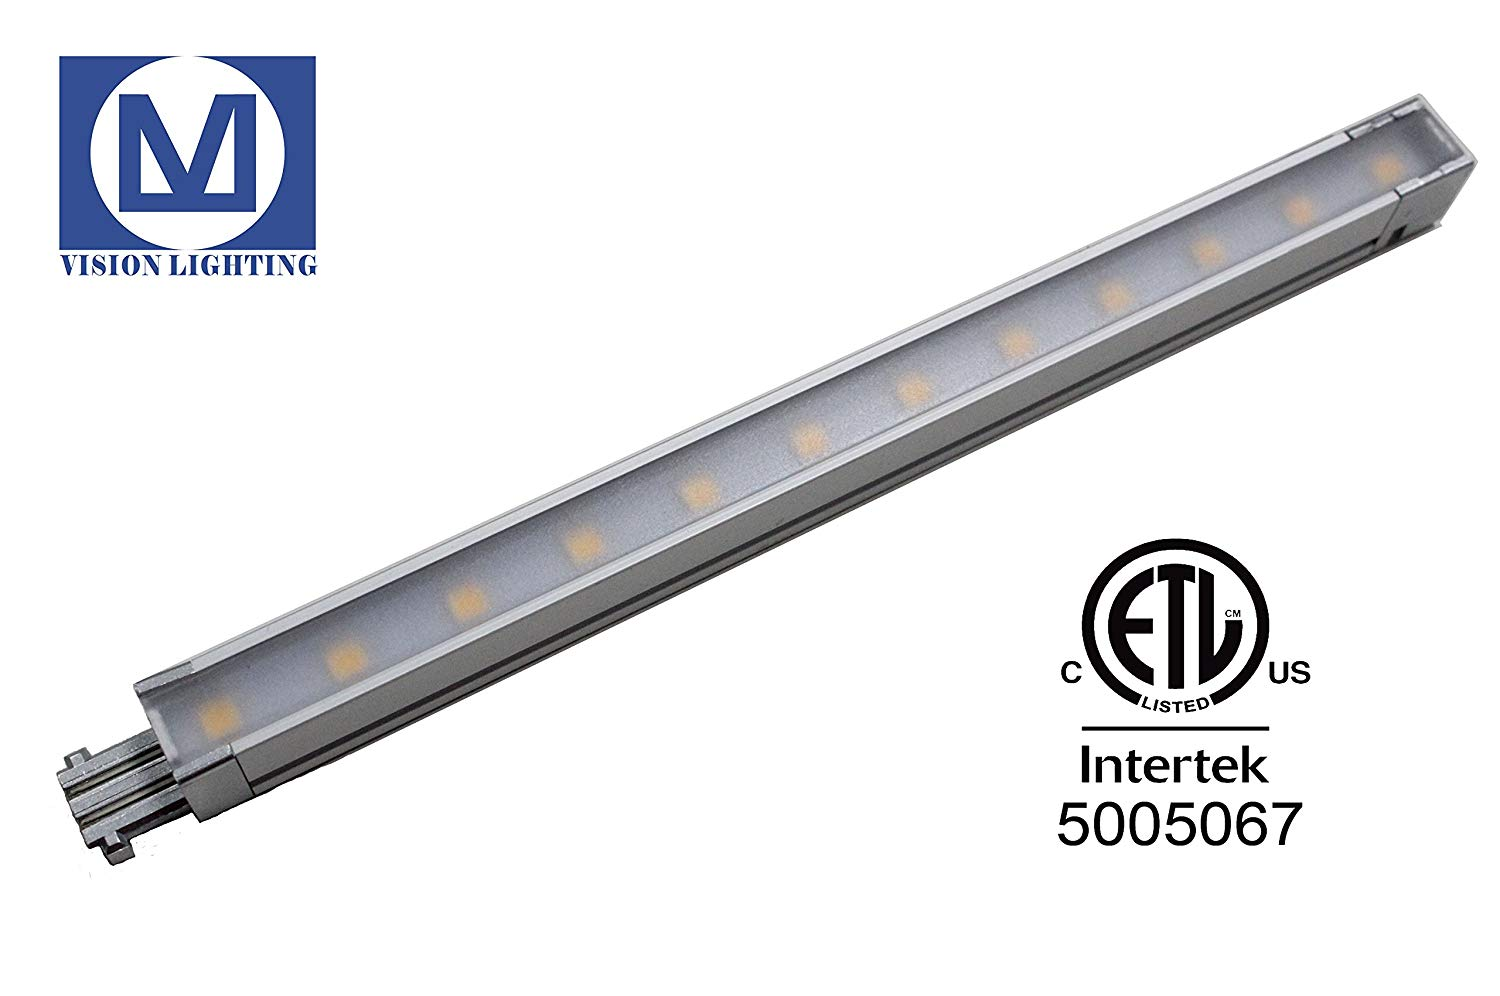 Qin Li Chuang SMD 2835 Spot-free Ultra Slim LED Linear Light with Clear Flat Cover 24V DC LED Hard Strip Non-waterproof IP21 (280MM, 4000K)